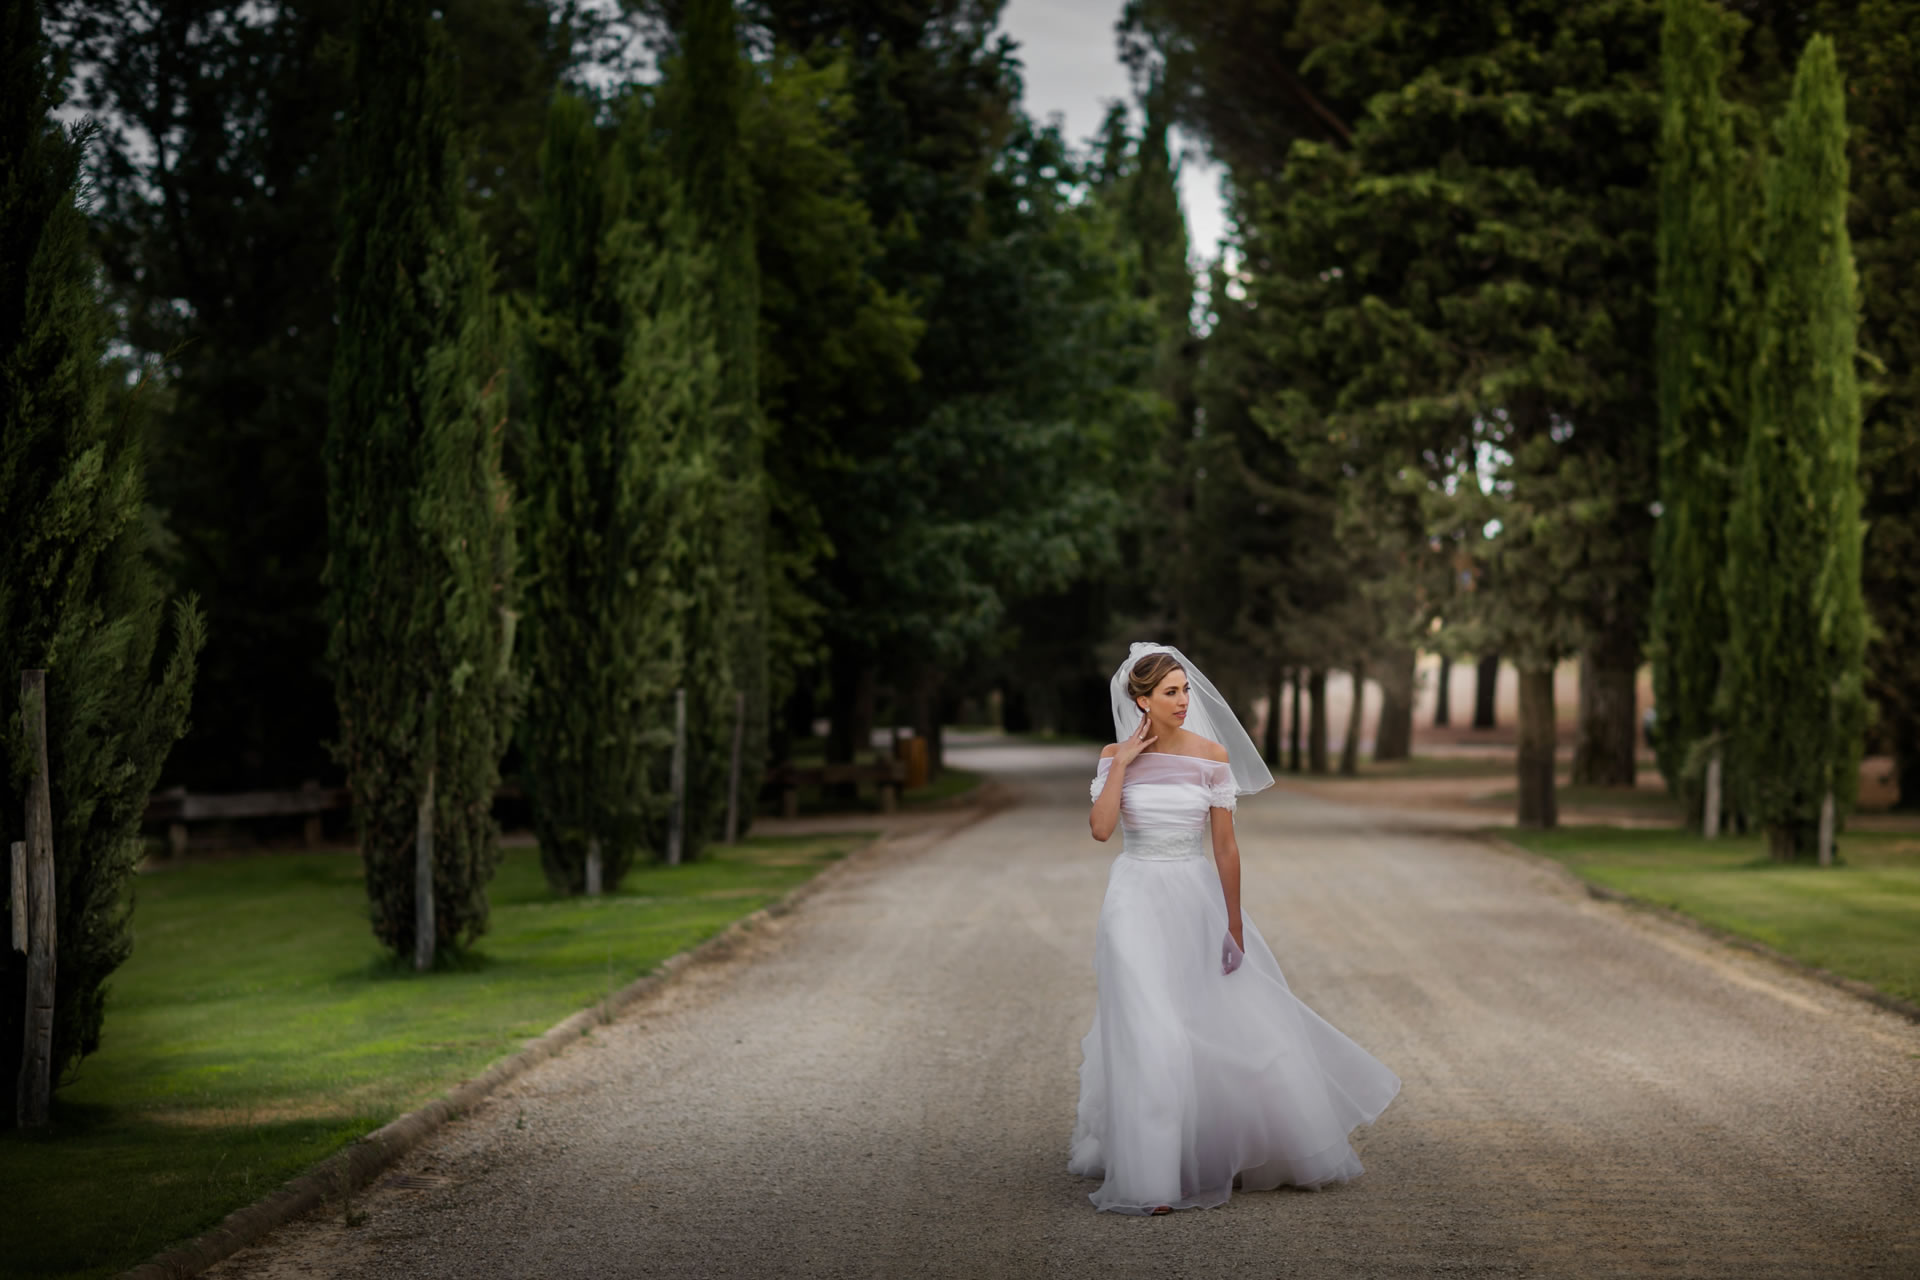 Walk - 25 :: Amazing wedding day at Il Borro :: Luxury wedding photography - 24 :: Walk - 25